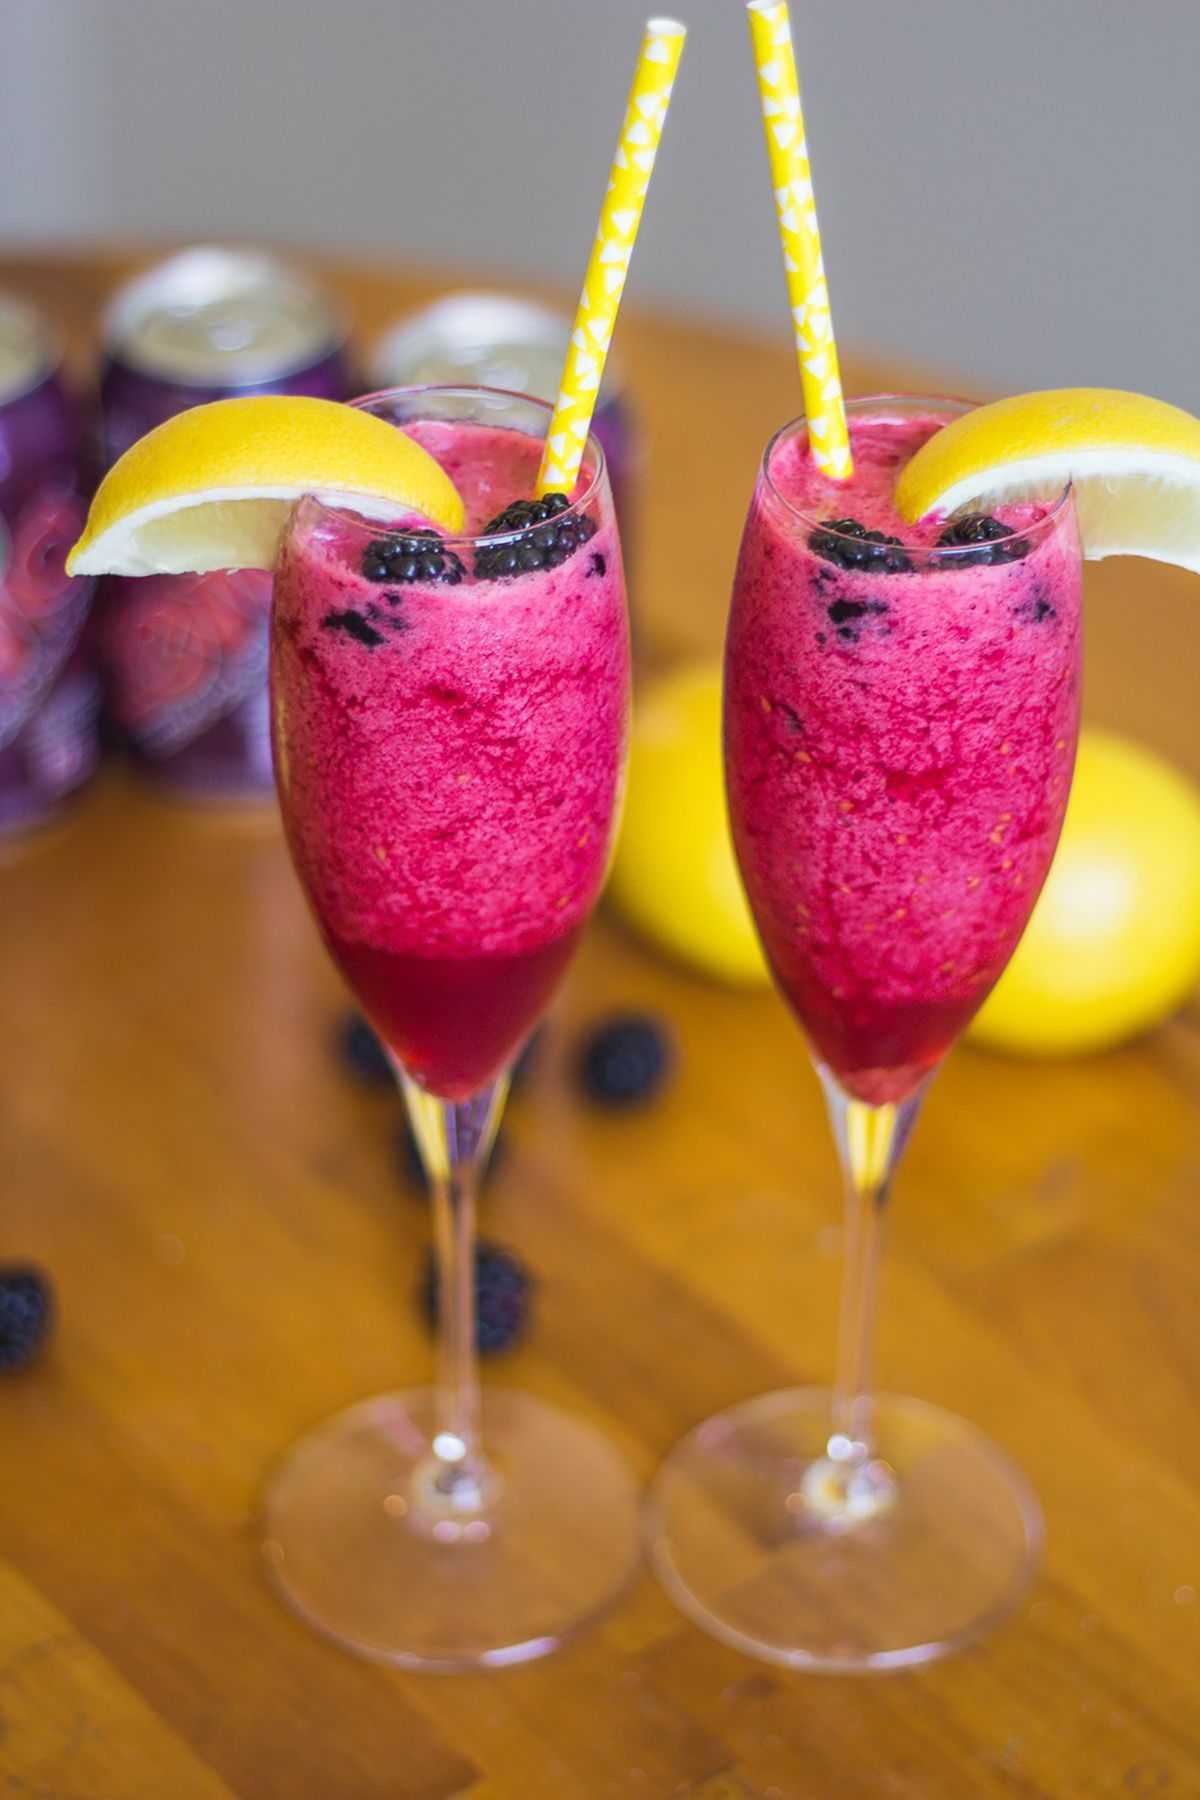 A few words on how to prepare a frozen cocktail